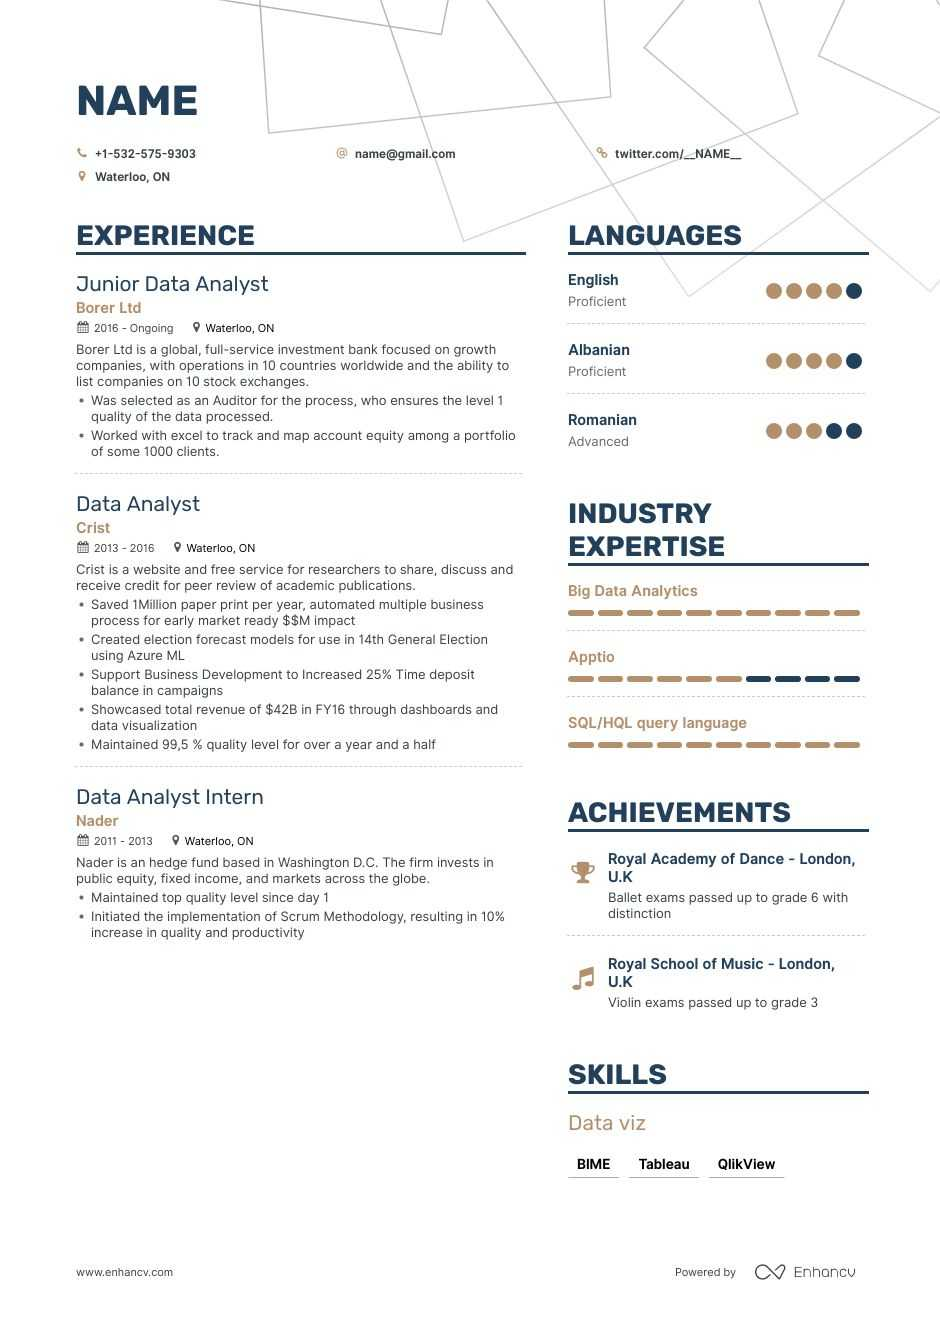 security analyst resume examples  skills  templates  u0026 more